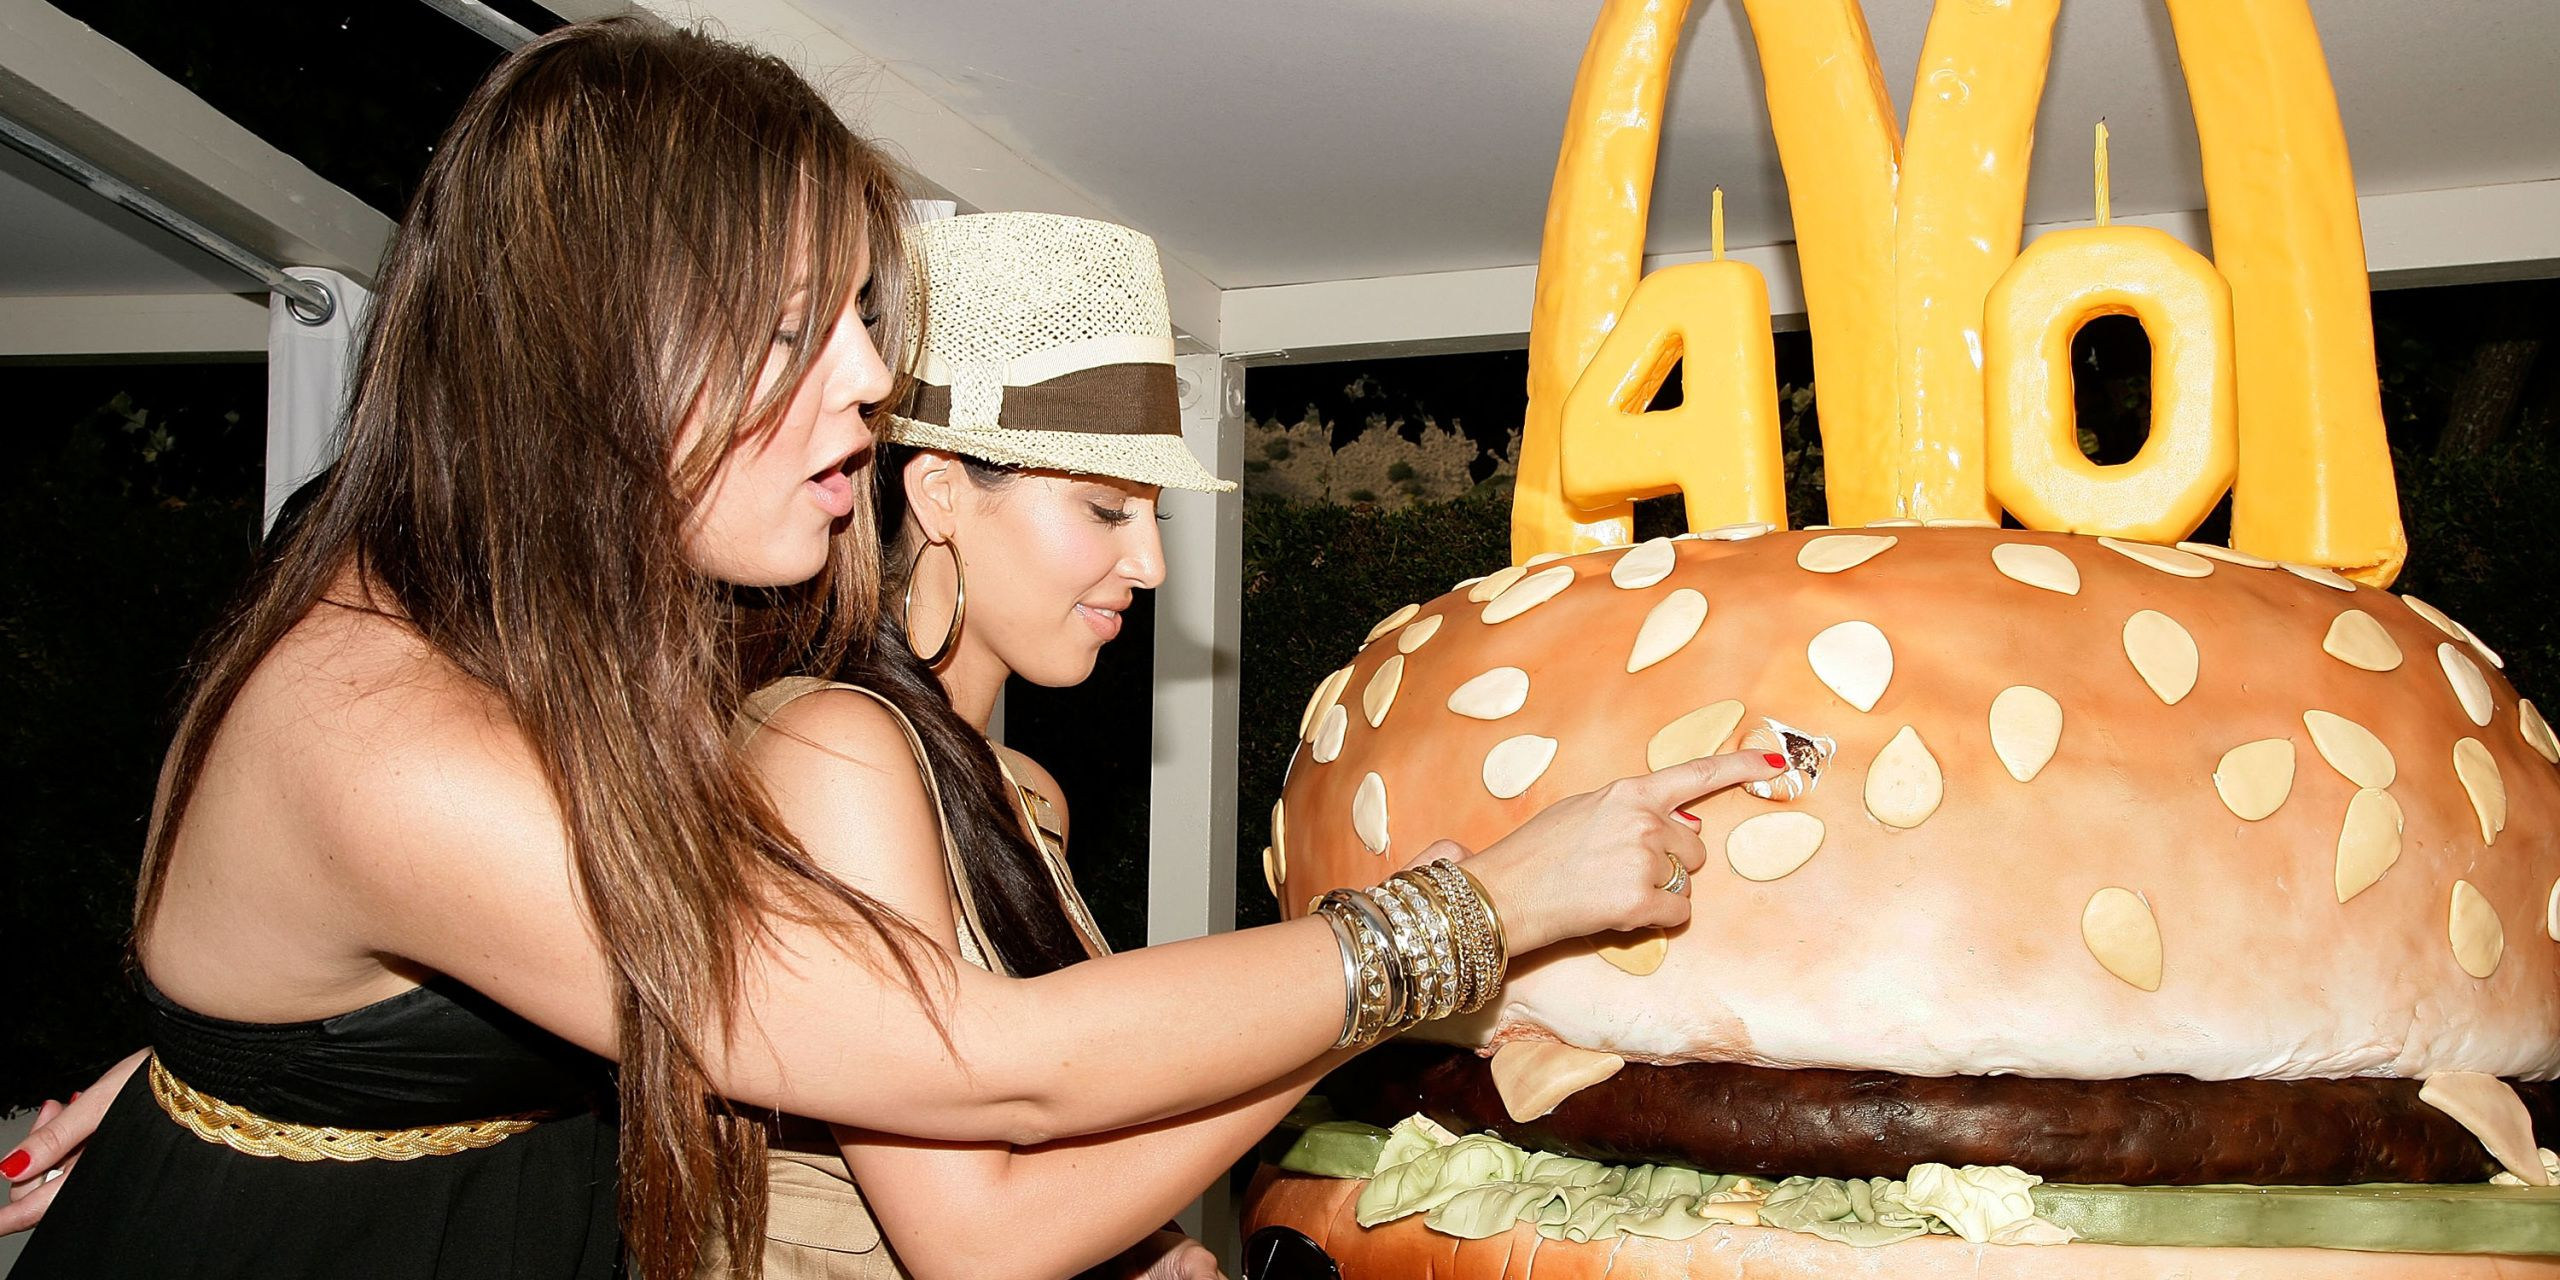 Kim and Khloé Kardashian cut into a giant Big Mac cake.